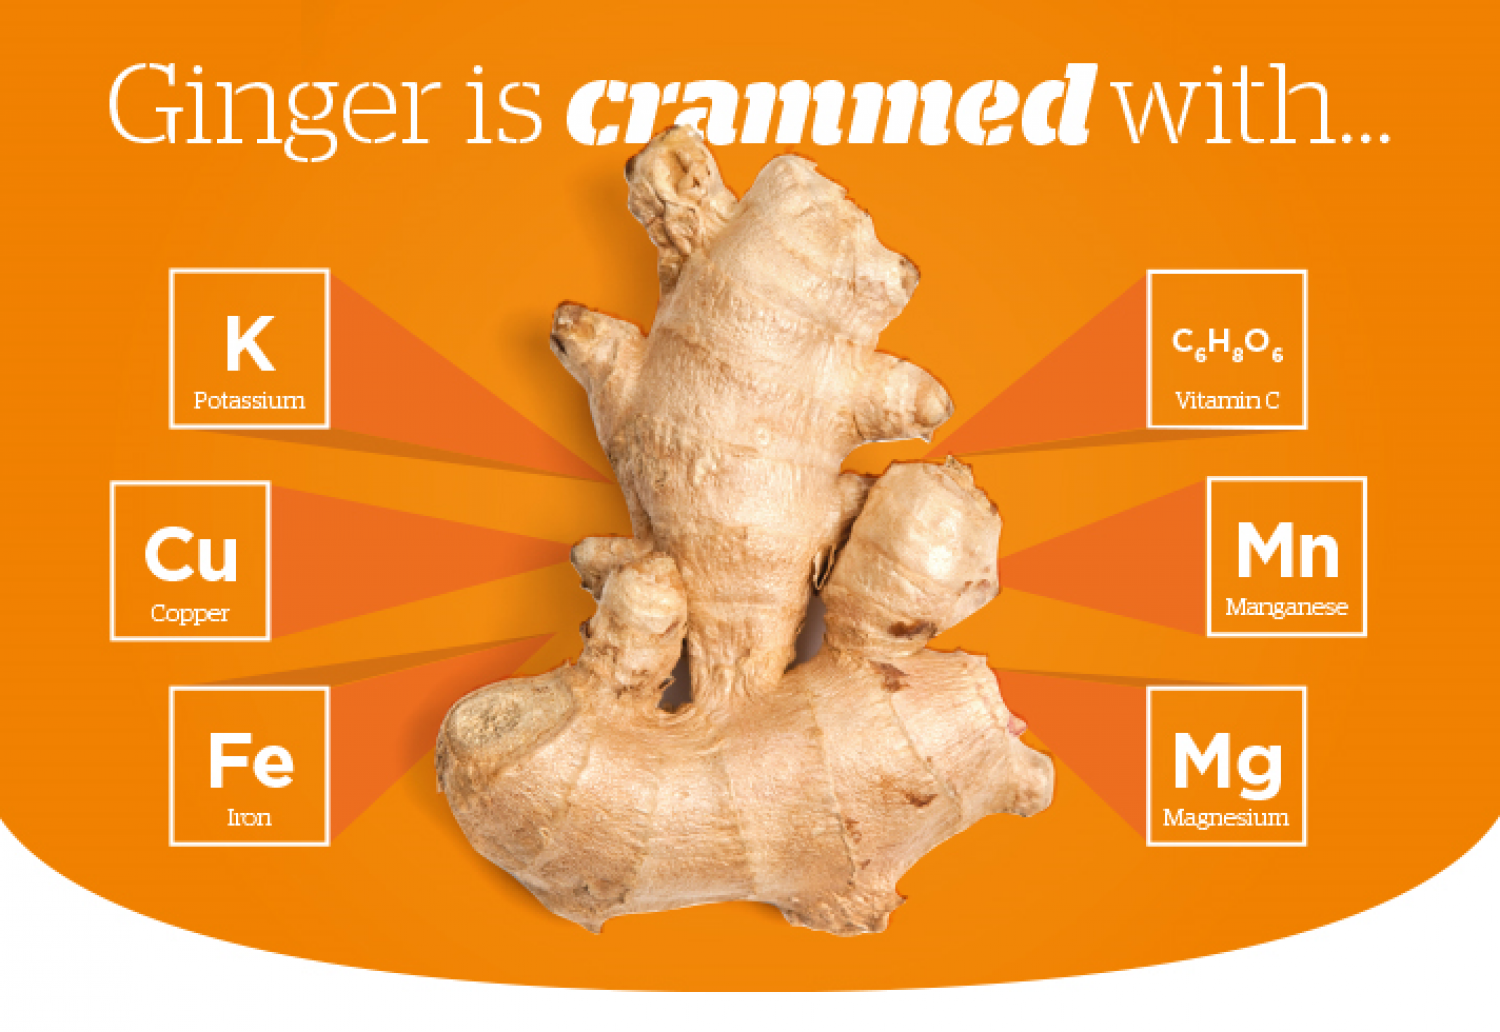 Ginger is Crammed with... Infographic